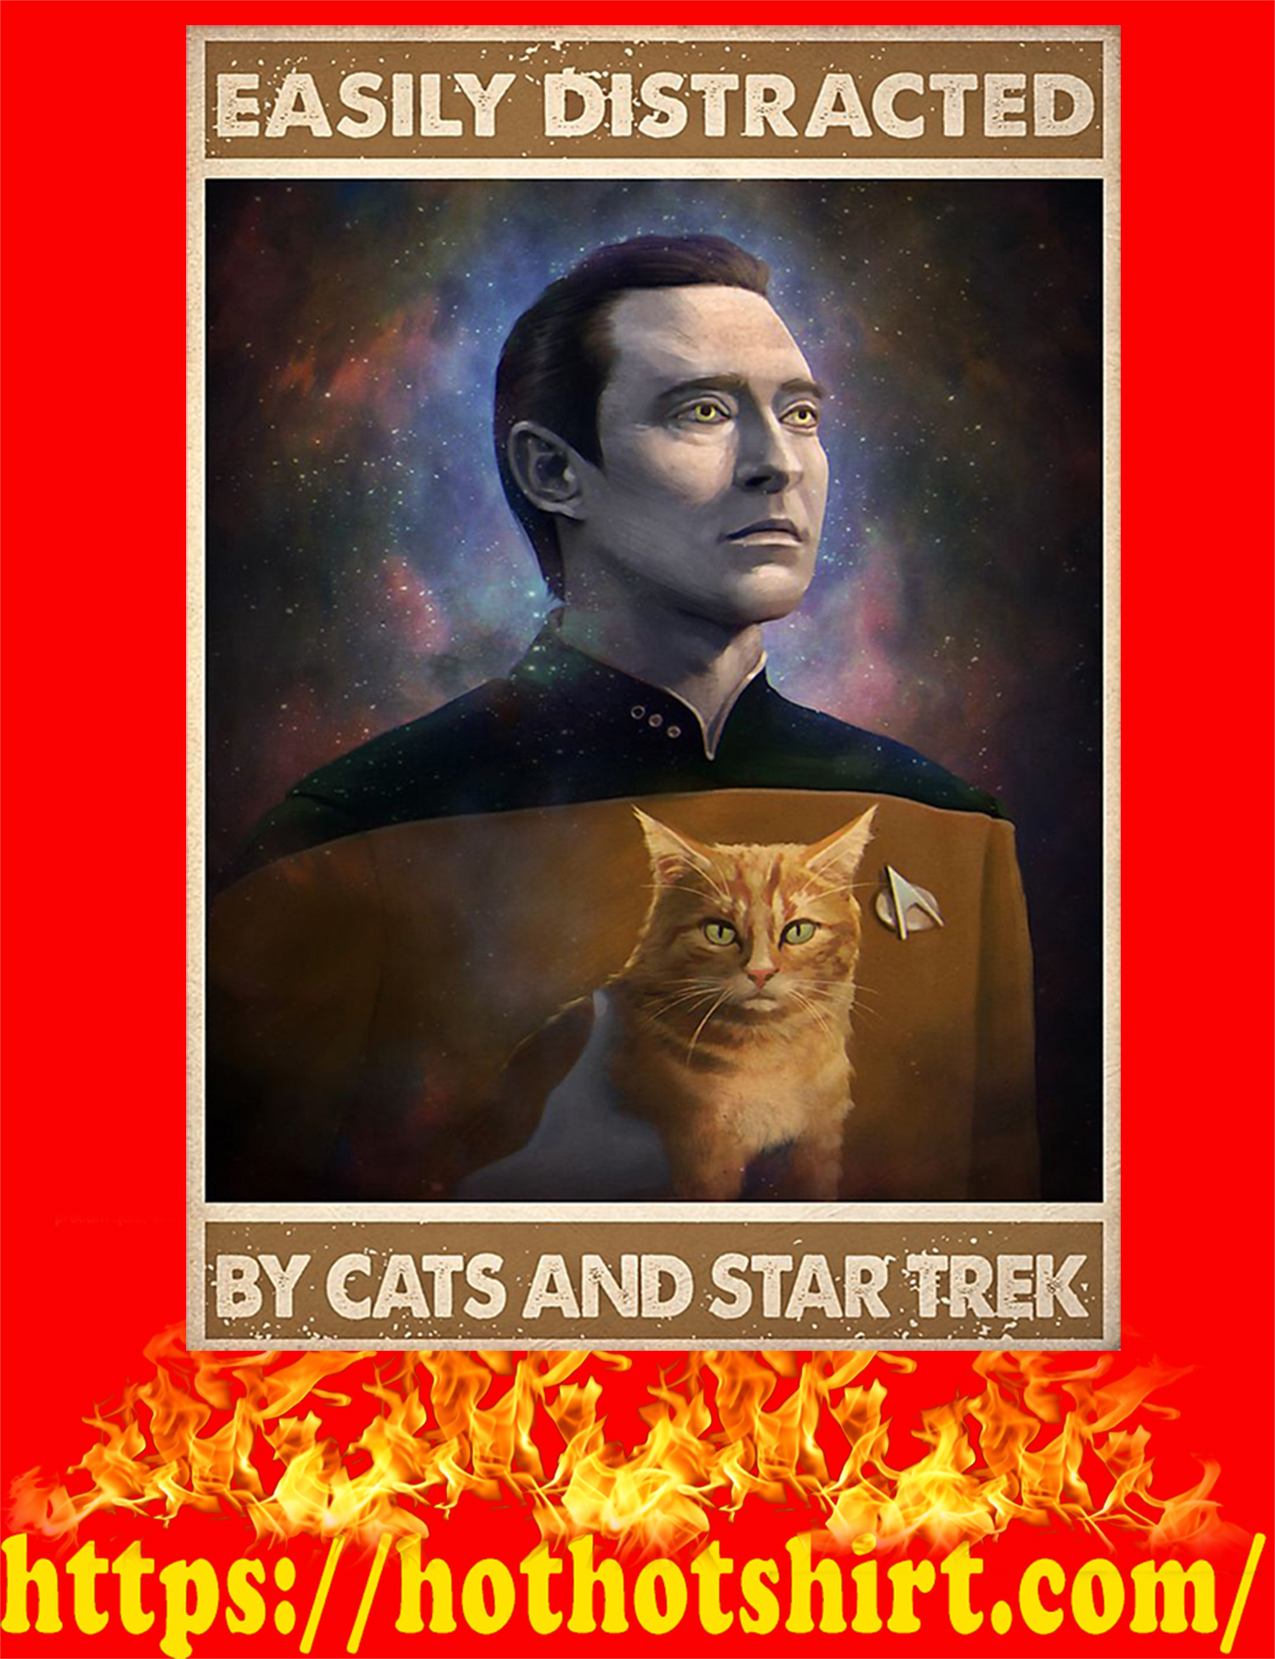 Easily distracted by cats and star trek poster - A2